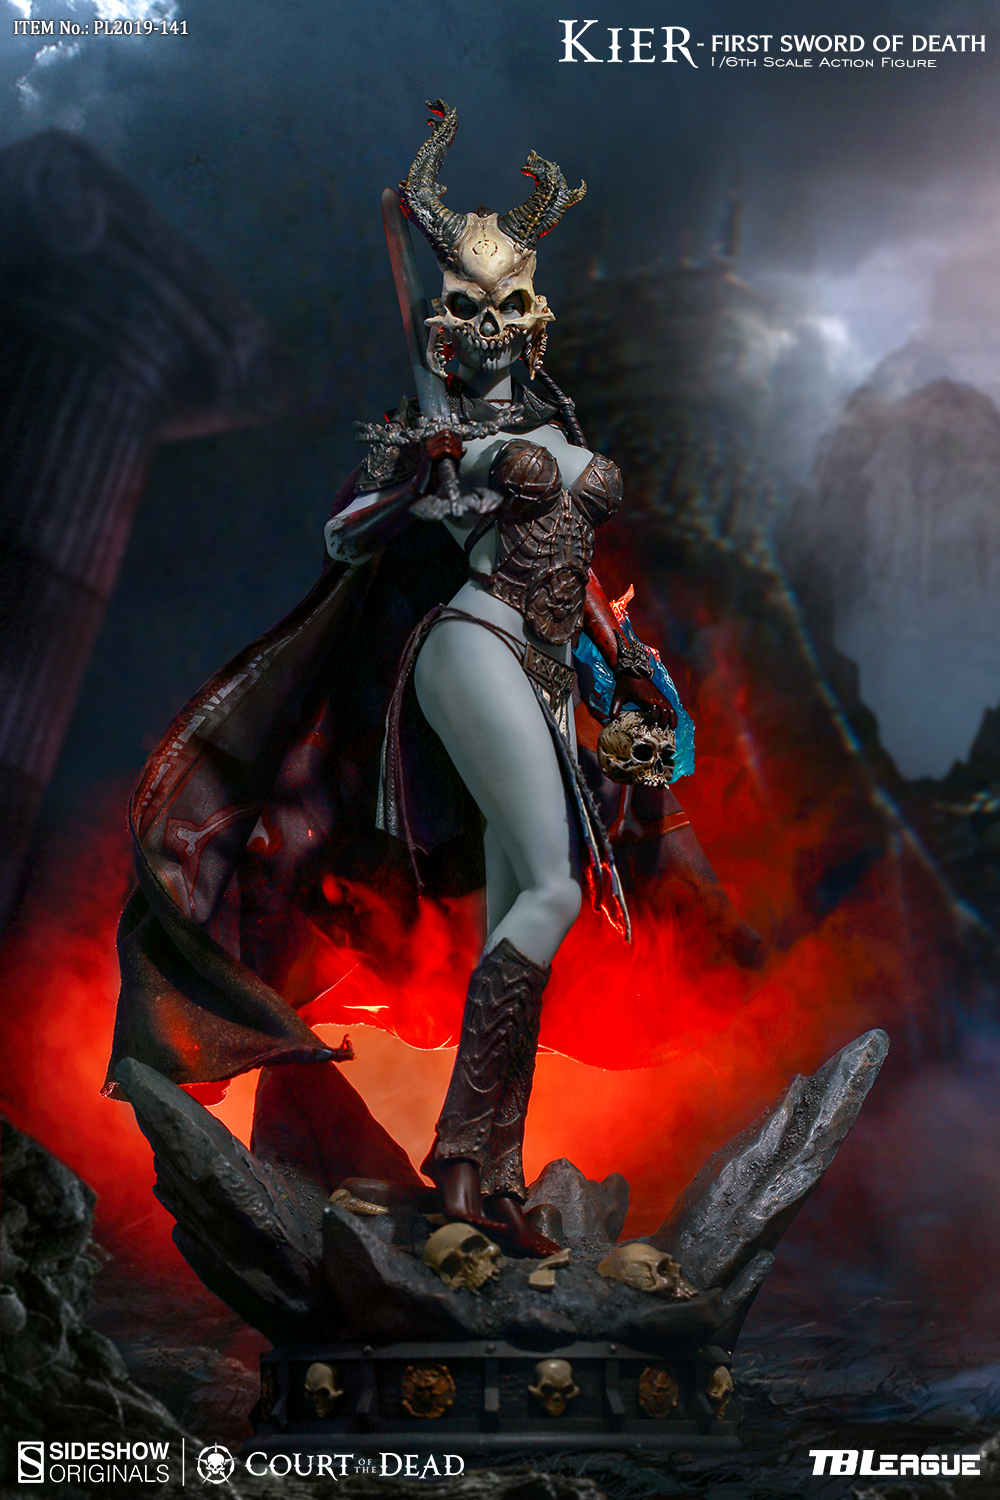 horror - NEW PRODUCT: TBLeague & Sideshow: 1/6 Court of the Dead - Valkyrie Cole / Kier movable doll (PL2019-141) 16260510